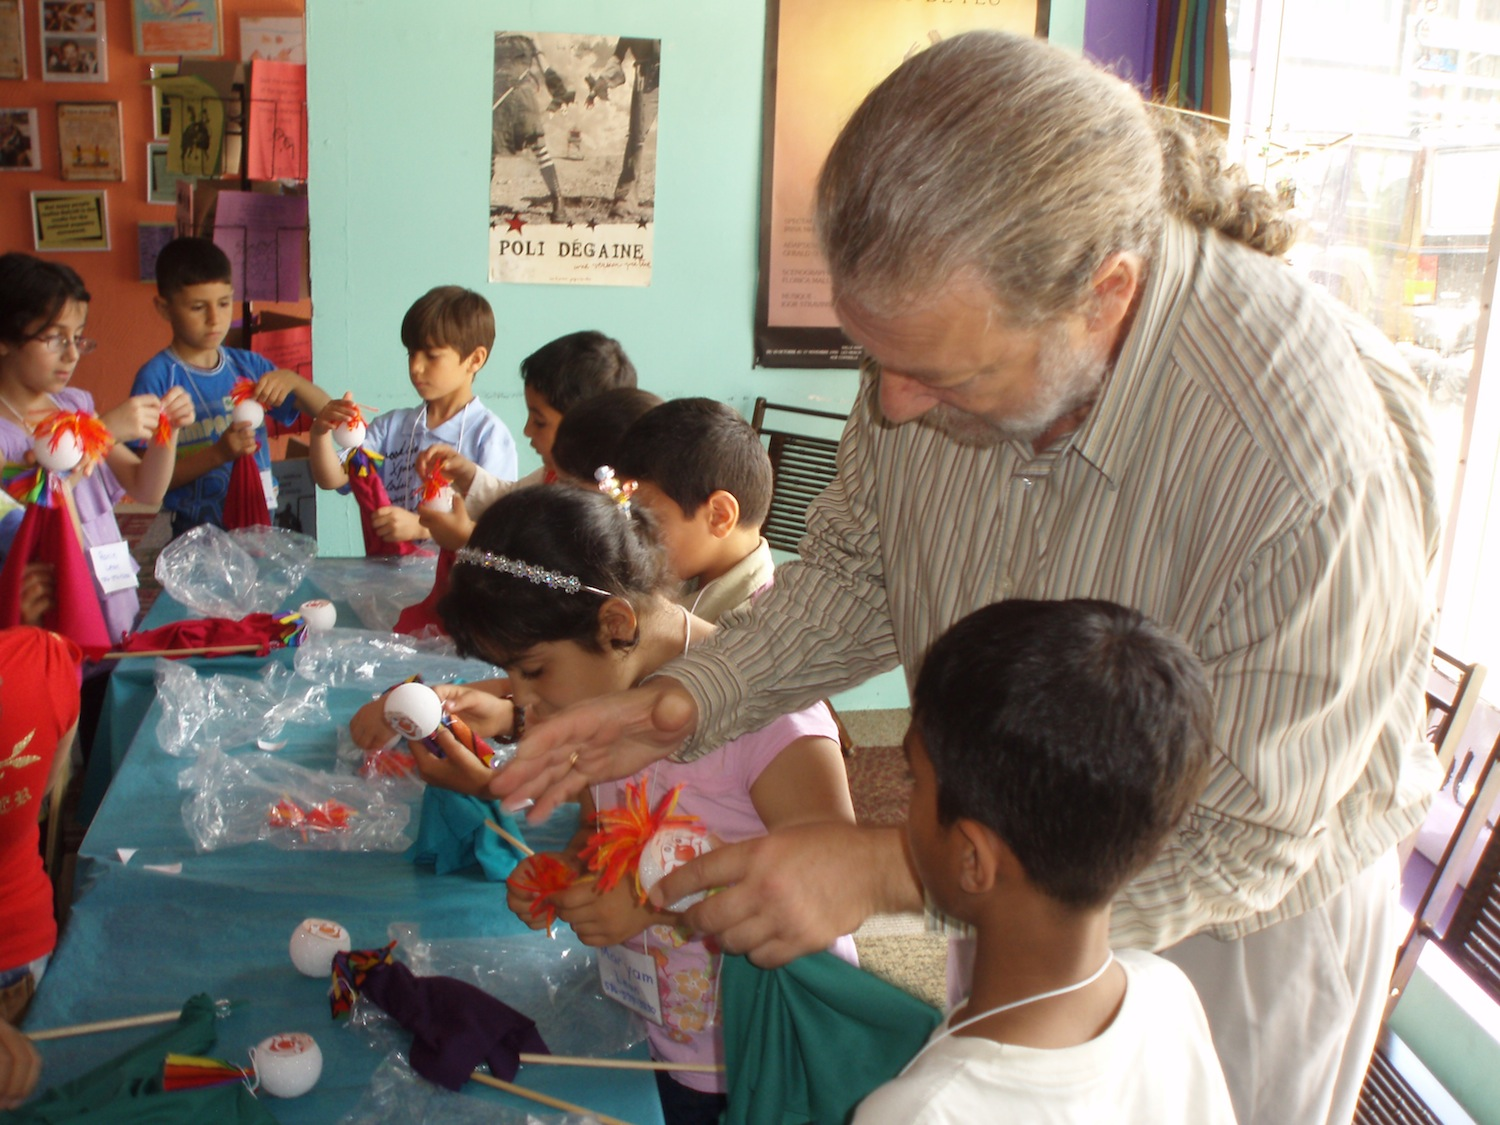 AFTER SHOW WORKSHOPS - Join PuppetART's performers and teachers for our after show puppet making workshops. Make a puppet based on the show you've just seen and learn how to design and build your own puppets at home.